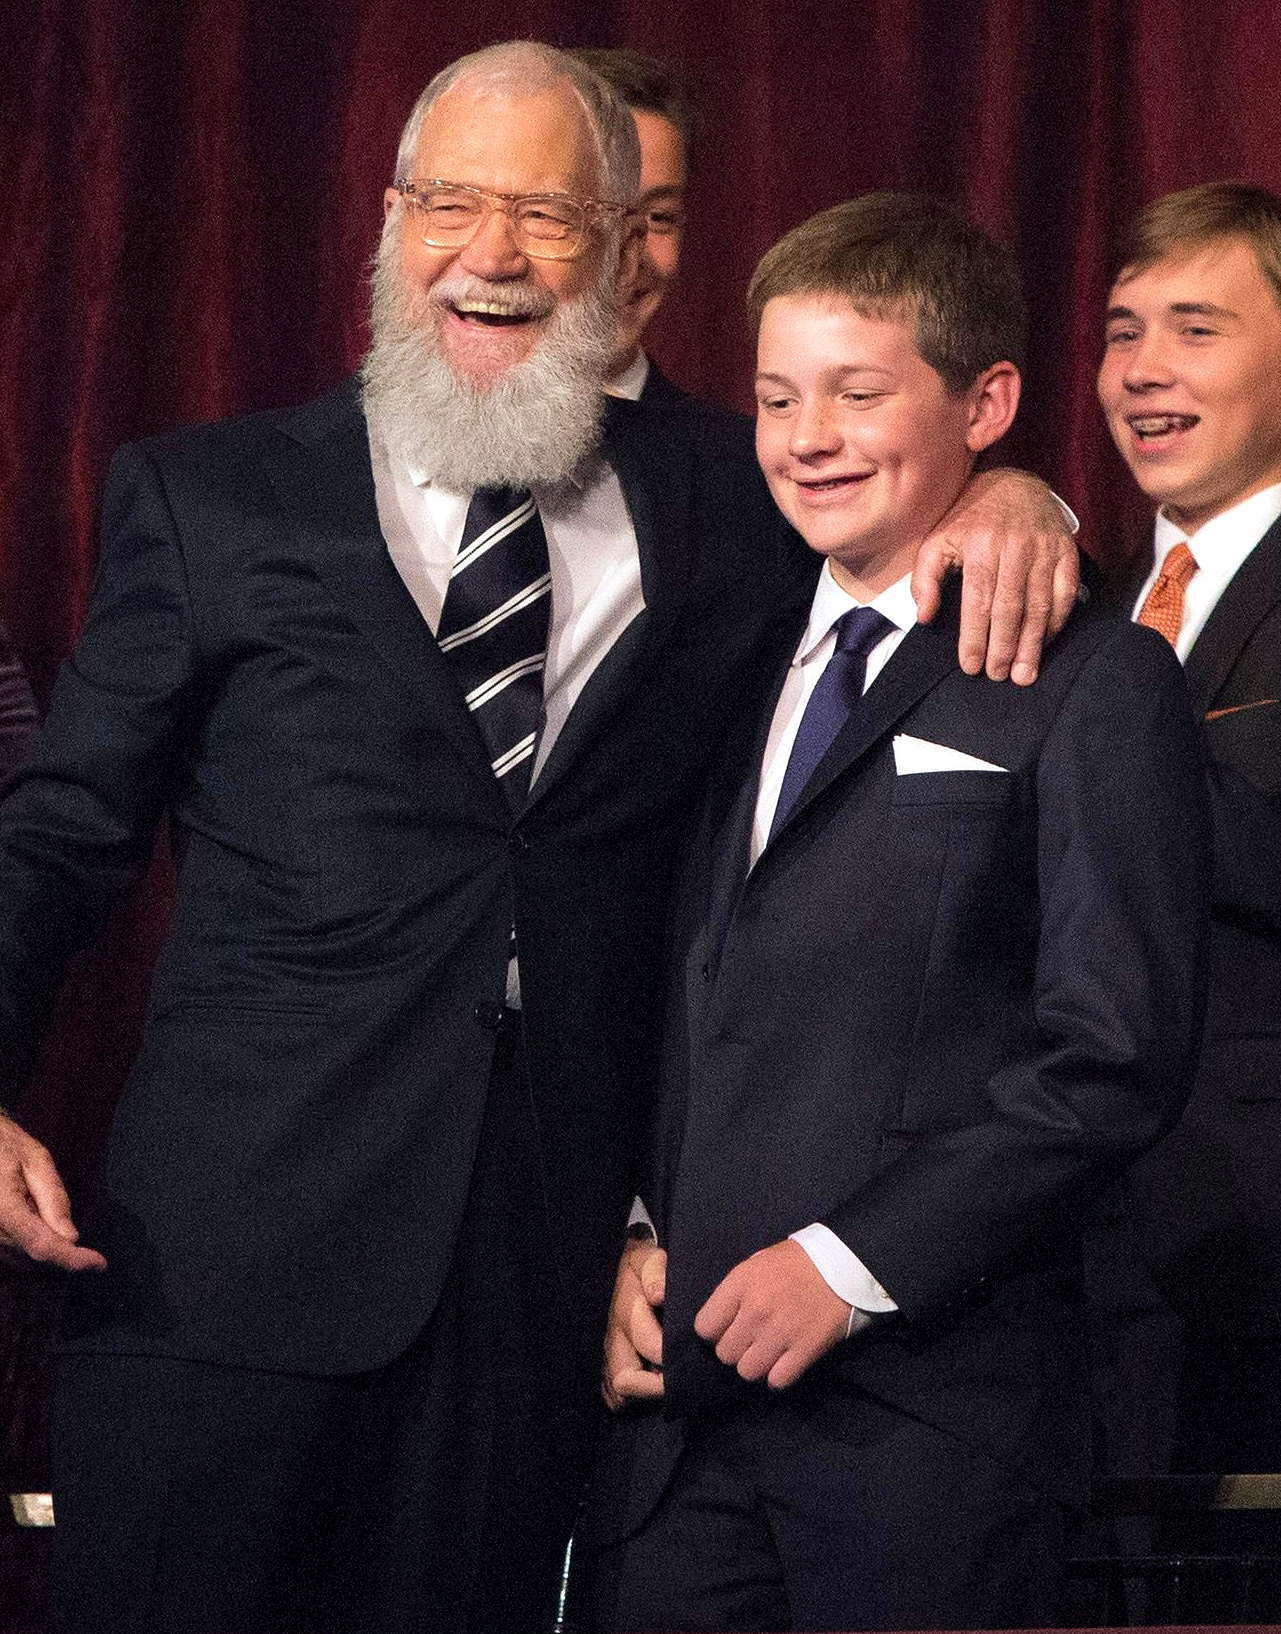 David Letterman and son